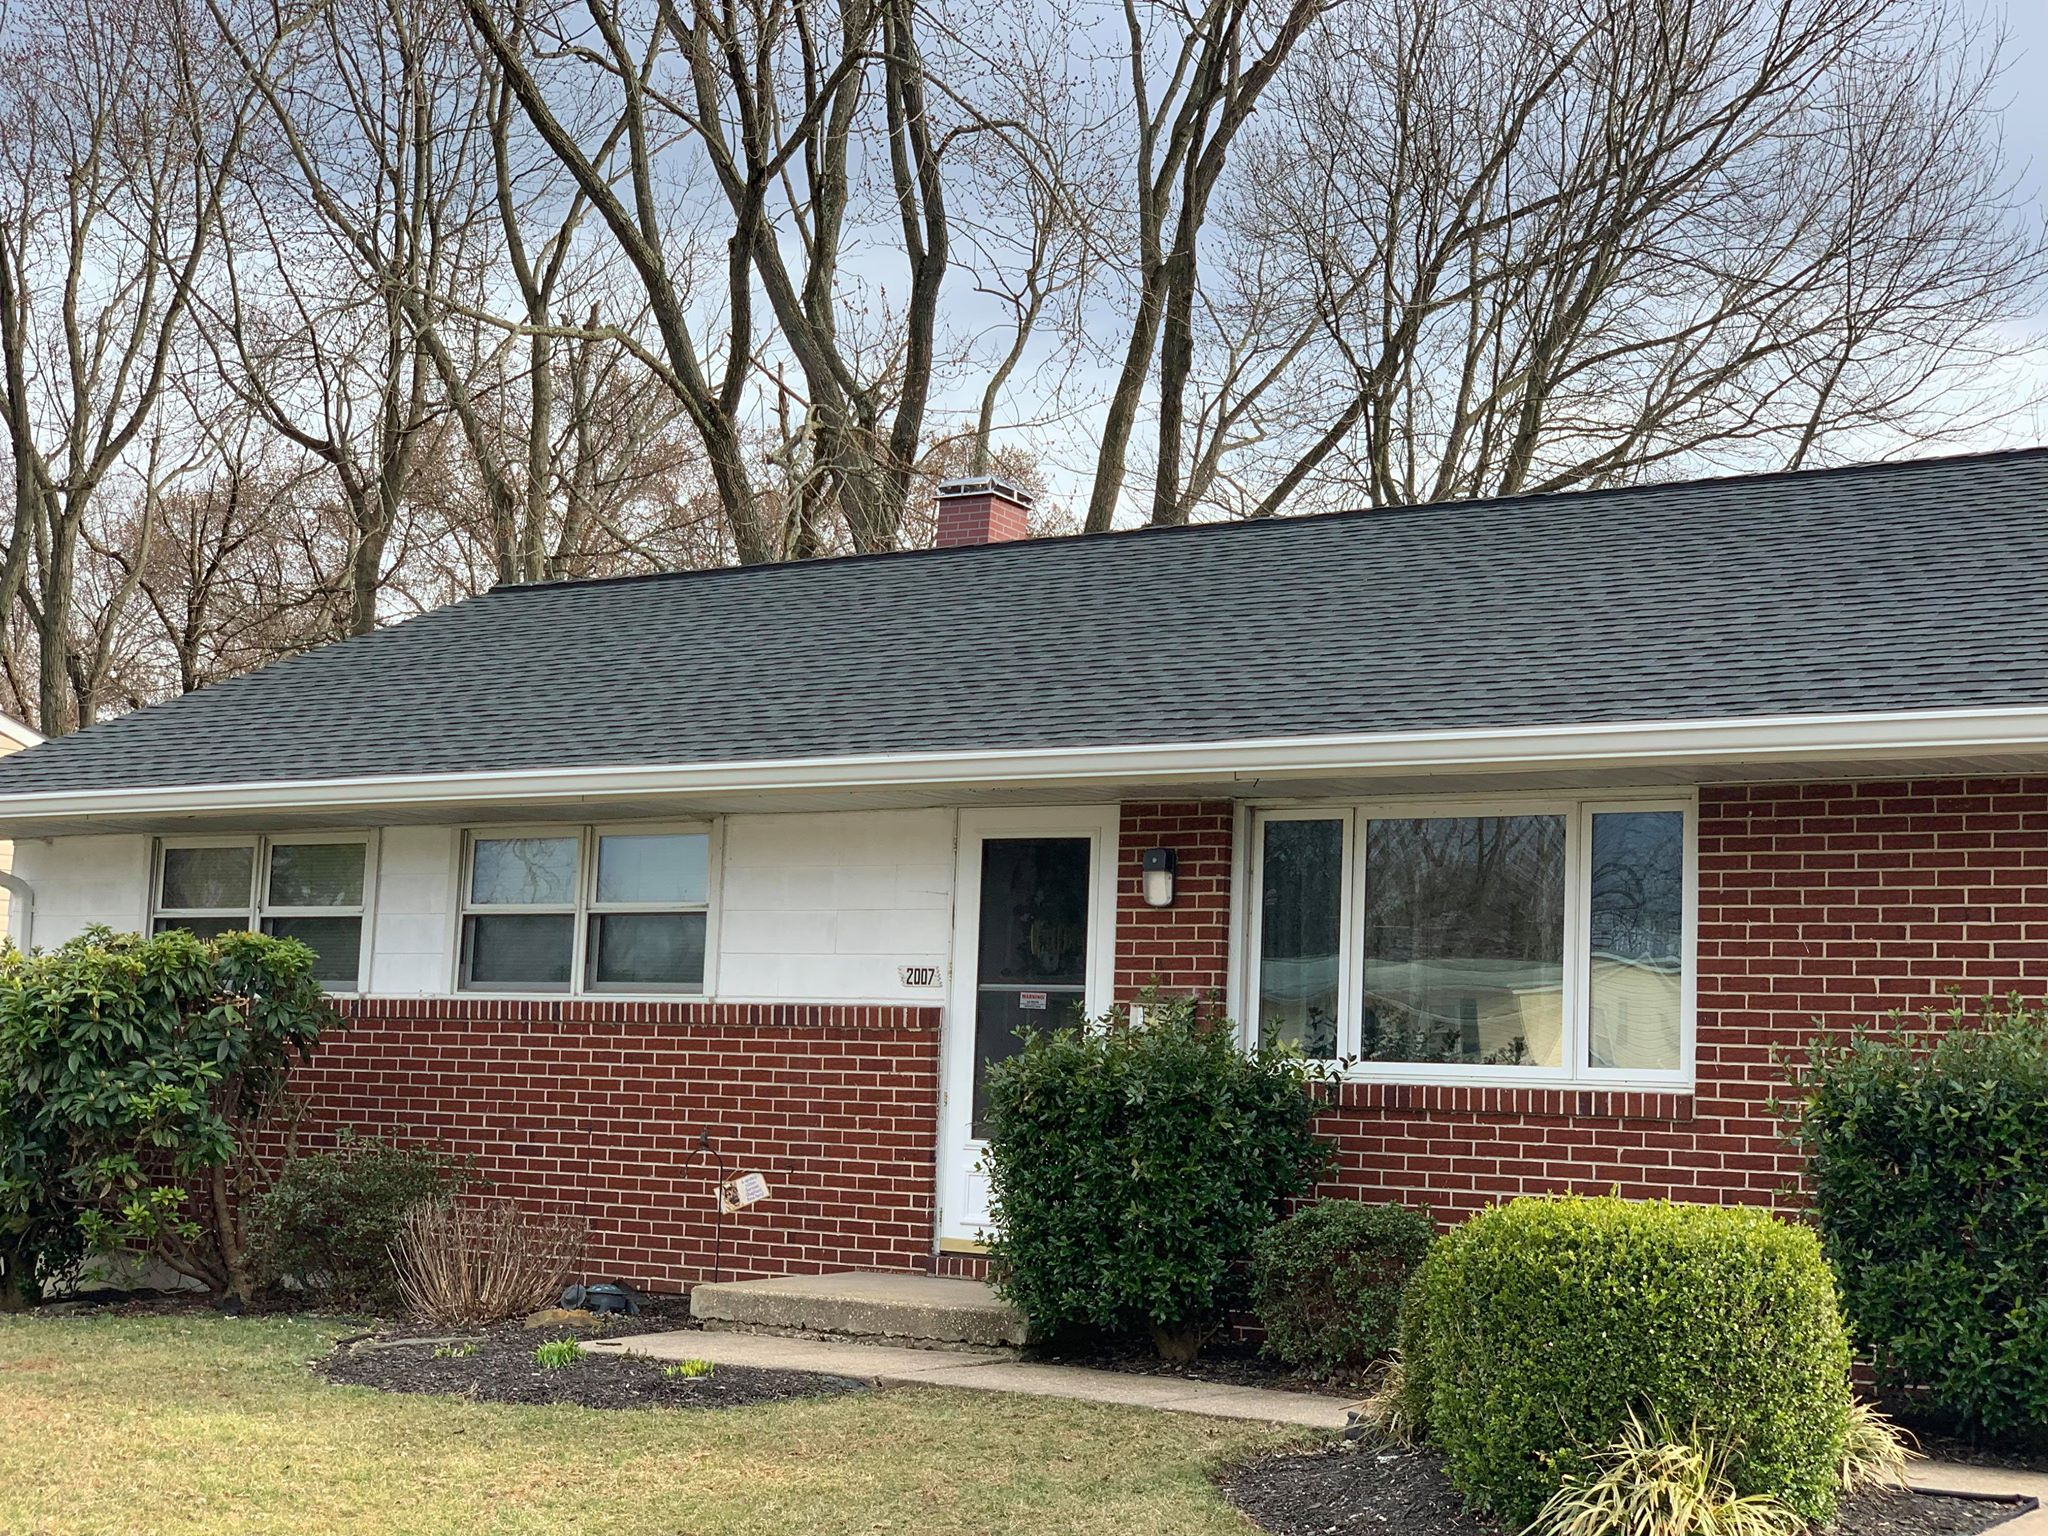 The O'Hara Family Home - a fresh, new charcoal roof and gutters system!